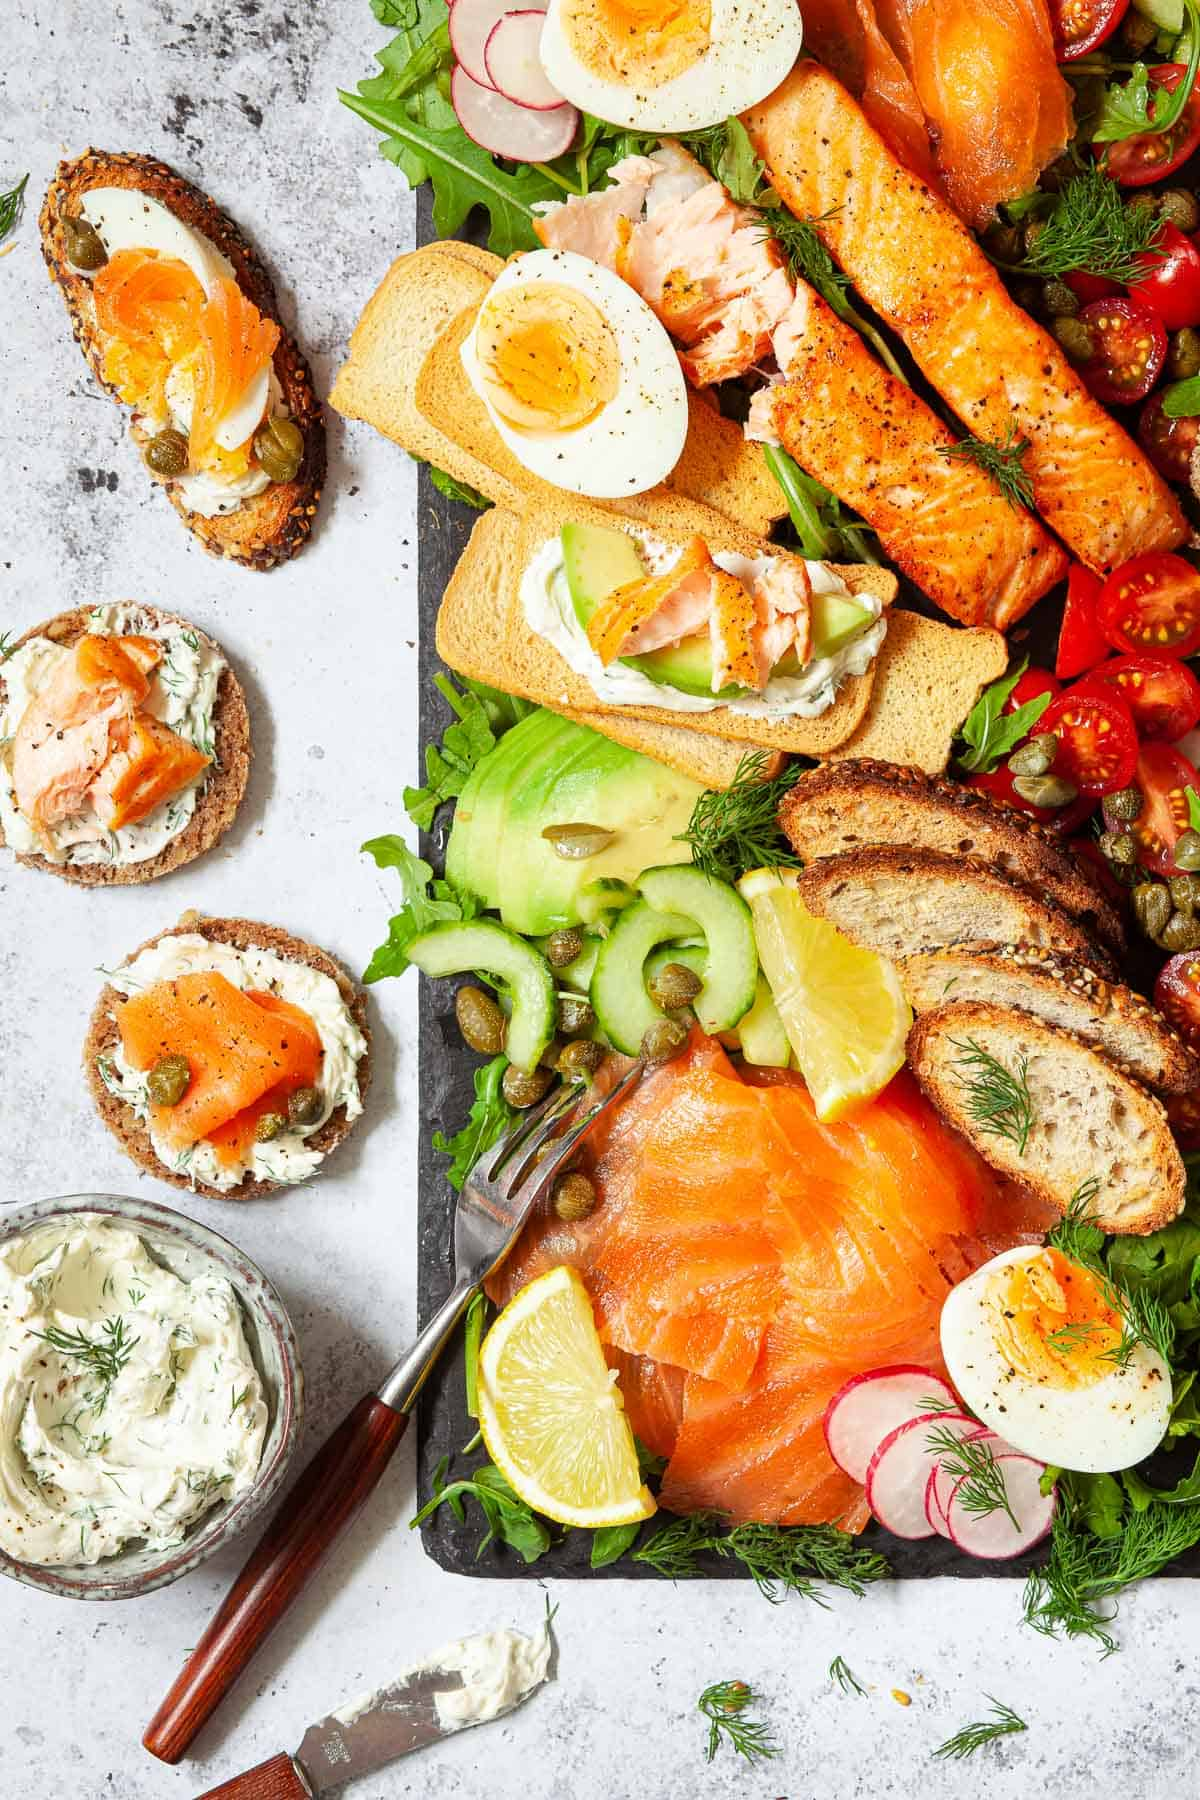 A salmon platter with assembled toasts at the side made from ingredients from the platter